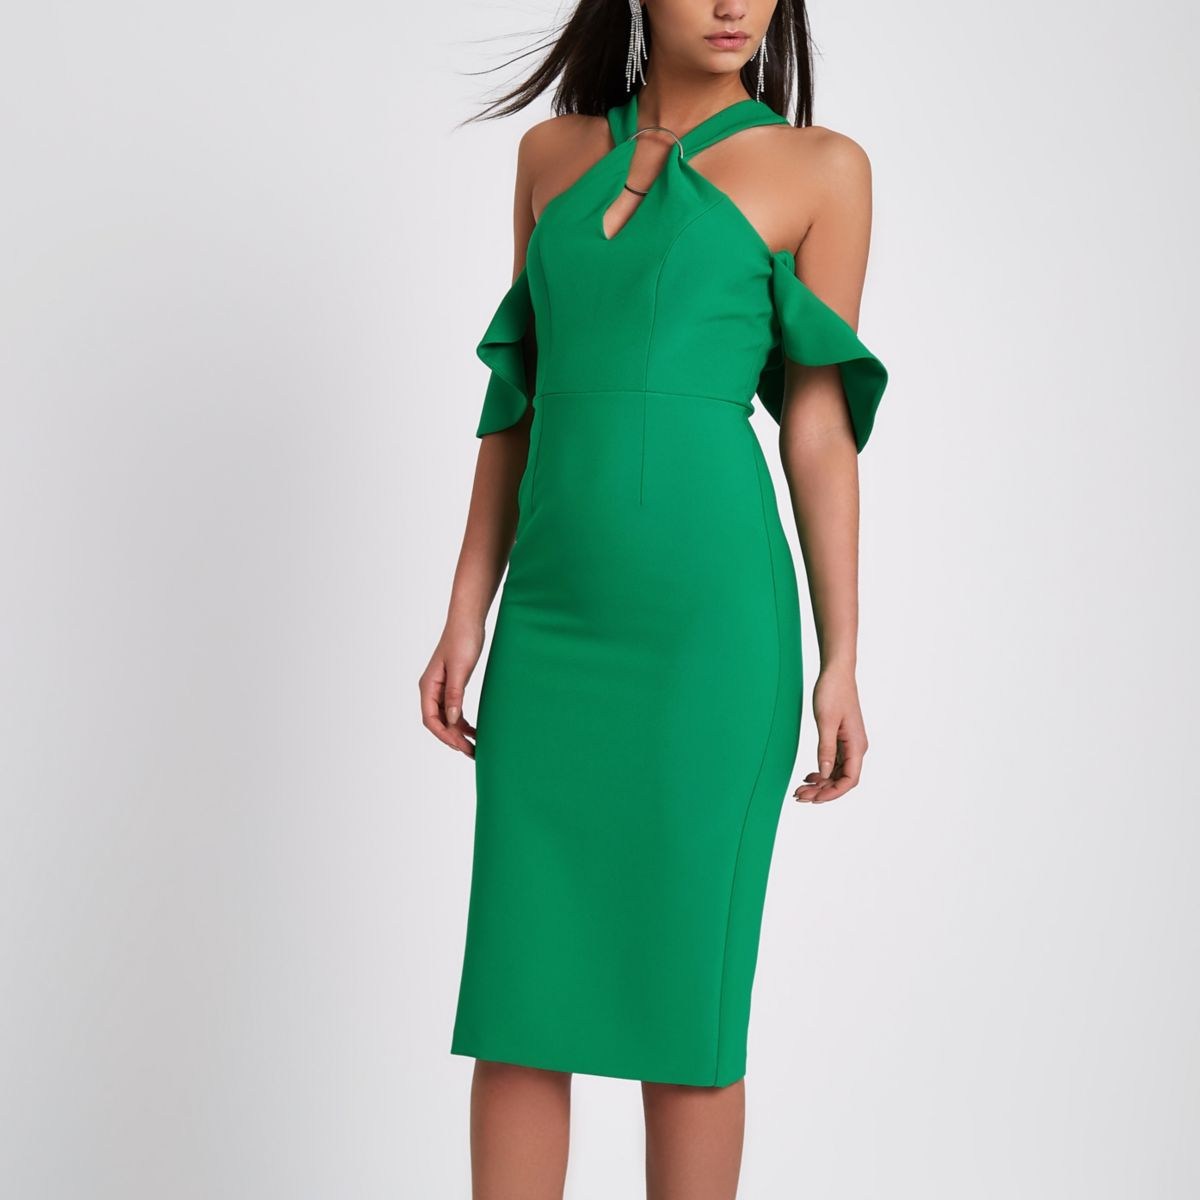 Green ring front bodycon midi dress